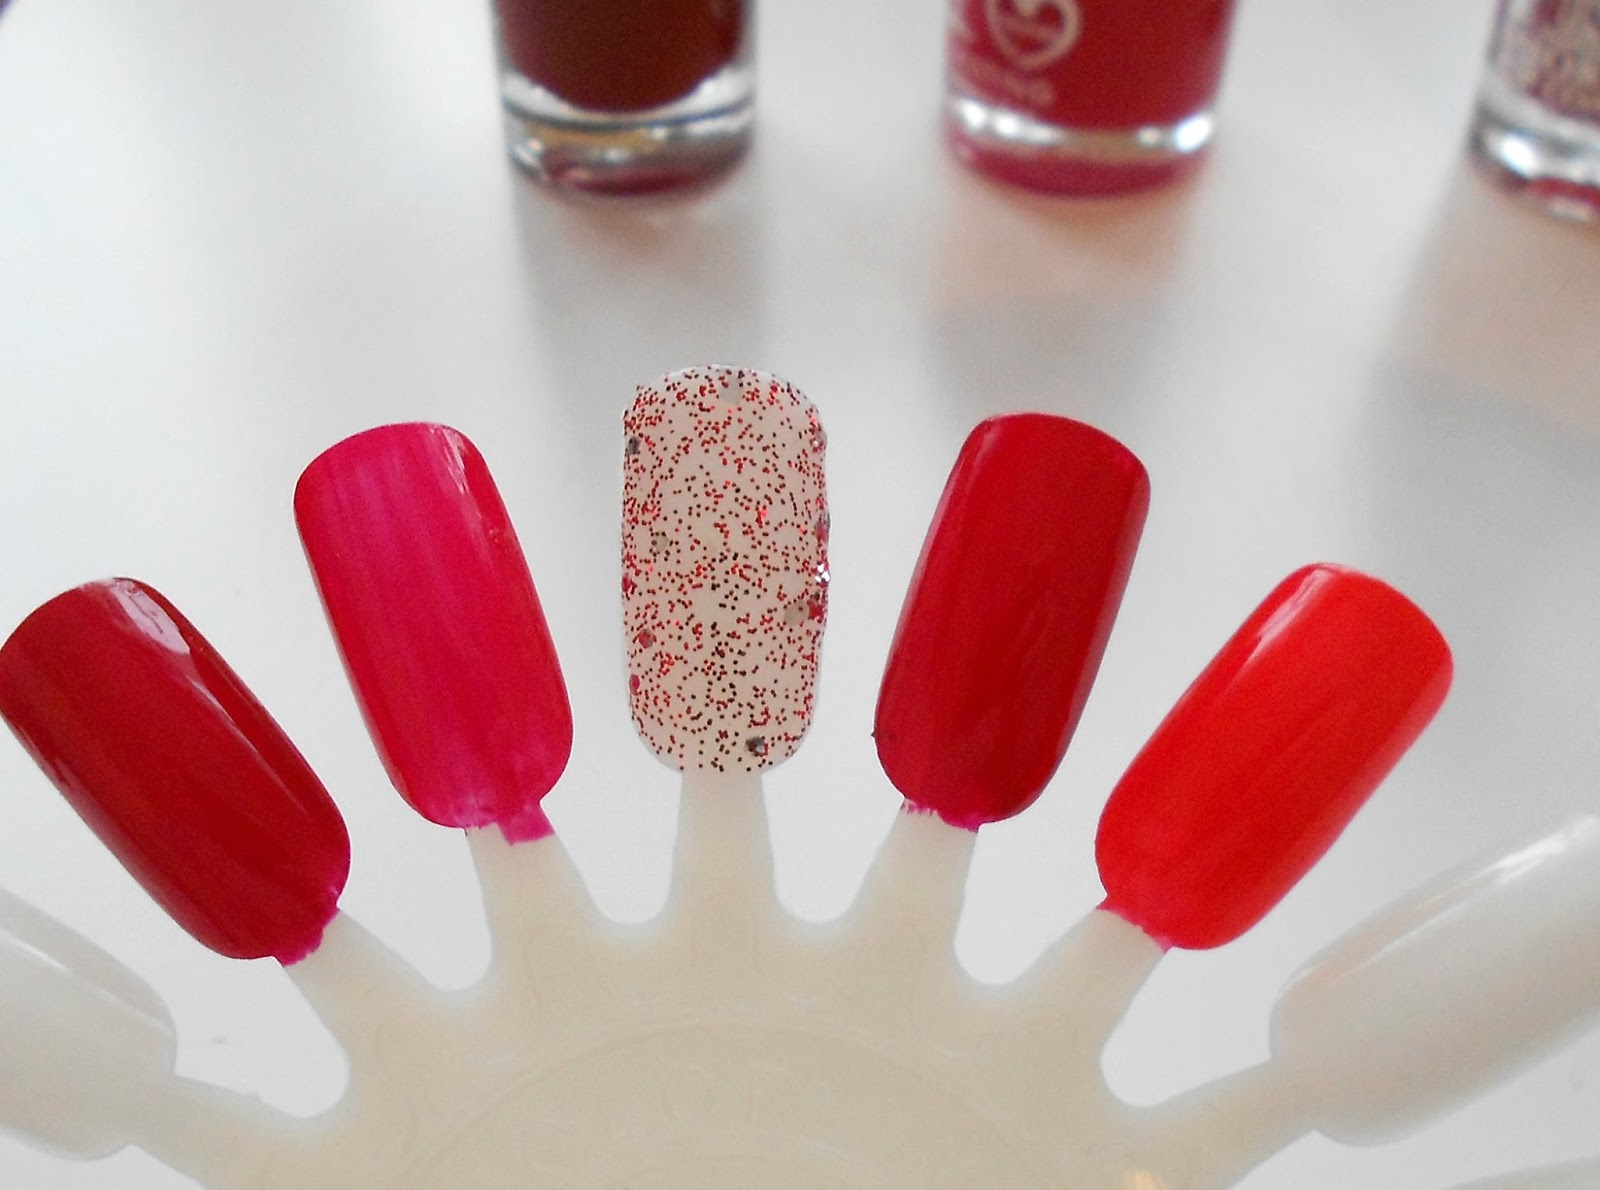 red nail polish swatch nyc bourjois rimmel maybelline barry m